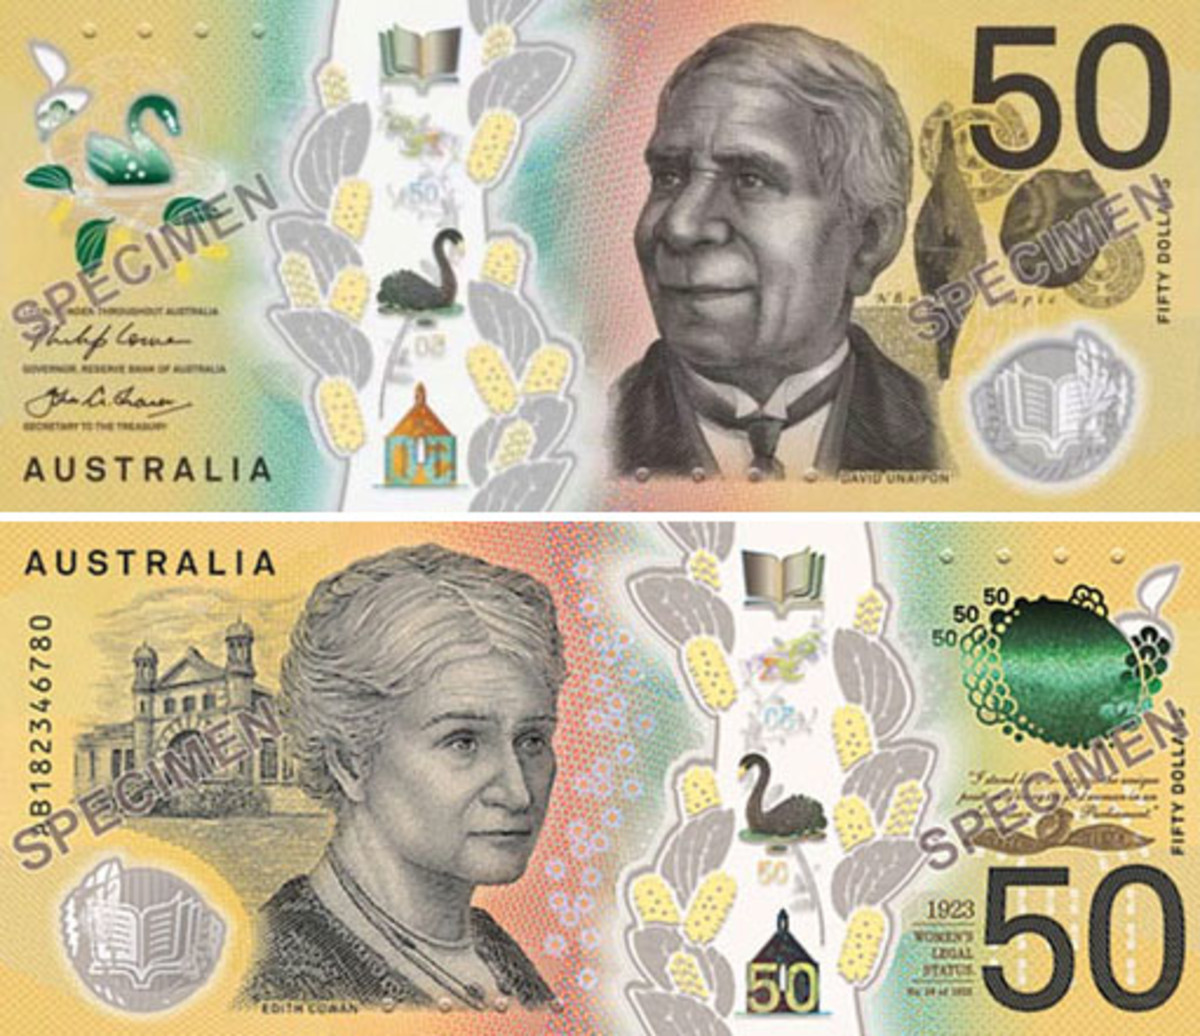 Face and back of Australia's new $50 bank note, to be placed in circulation later this year. (Images courtesy Reserve Bank of Australia.)